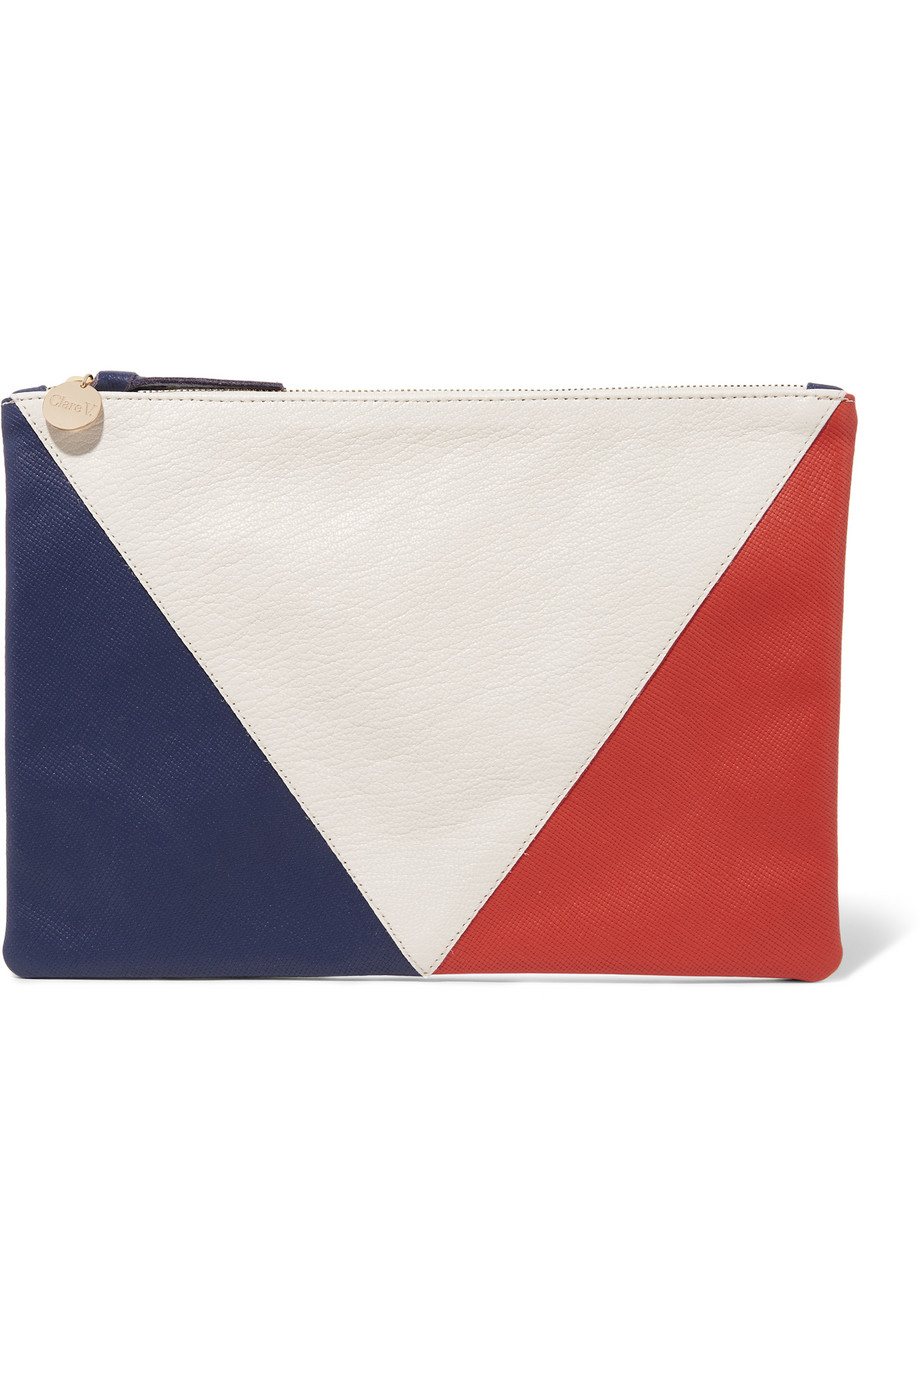 Clare V Supreme Color-Block Textured-Leather Clutch, White/Blue, Women's